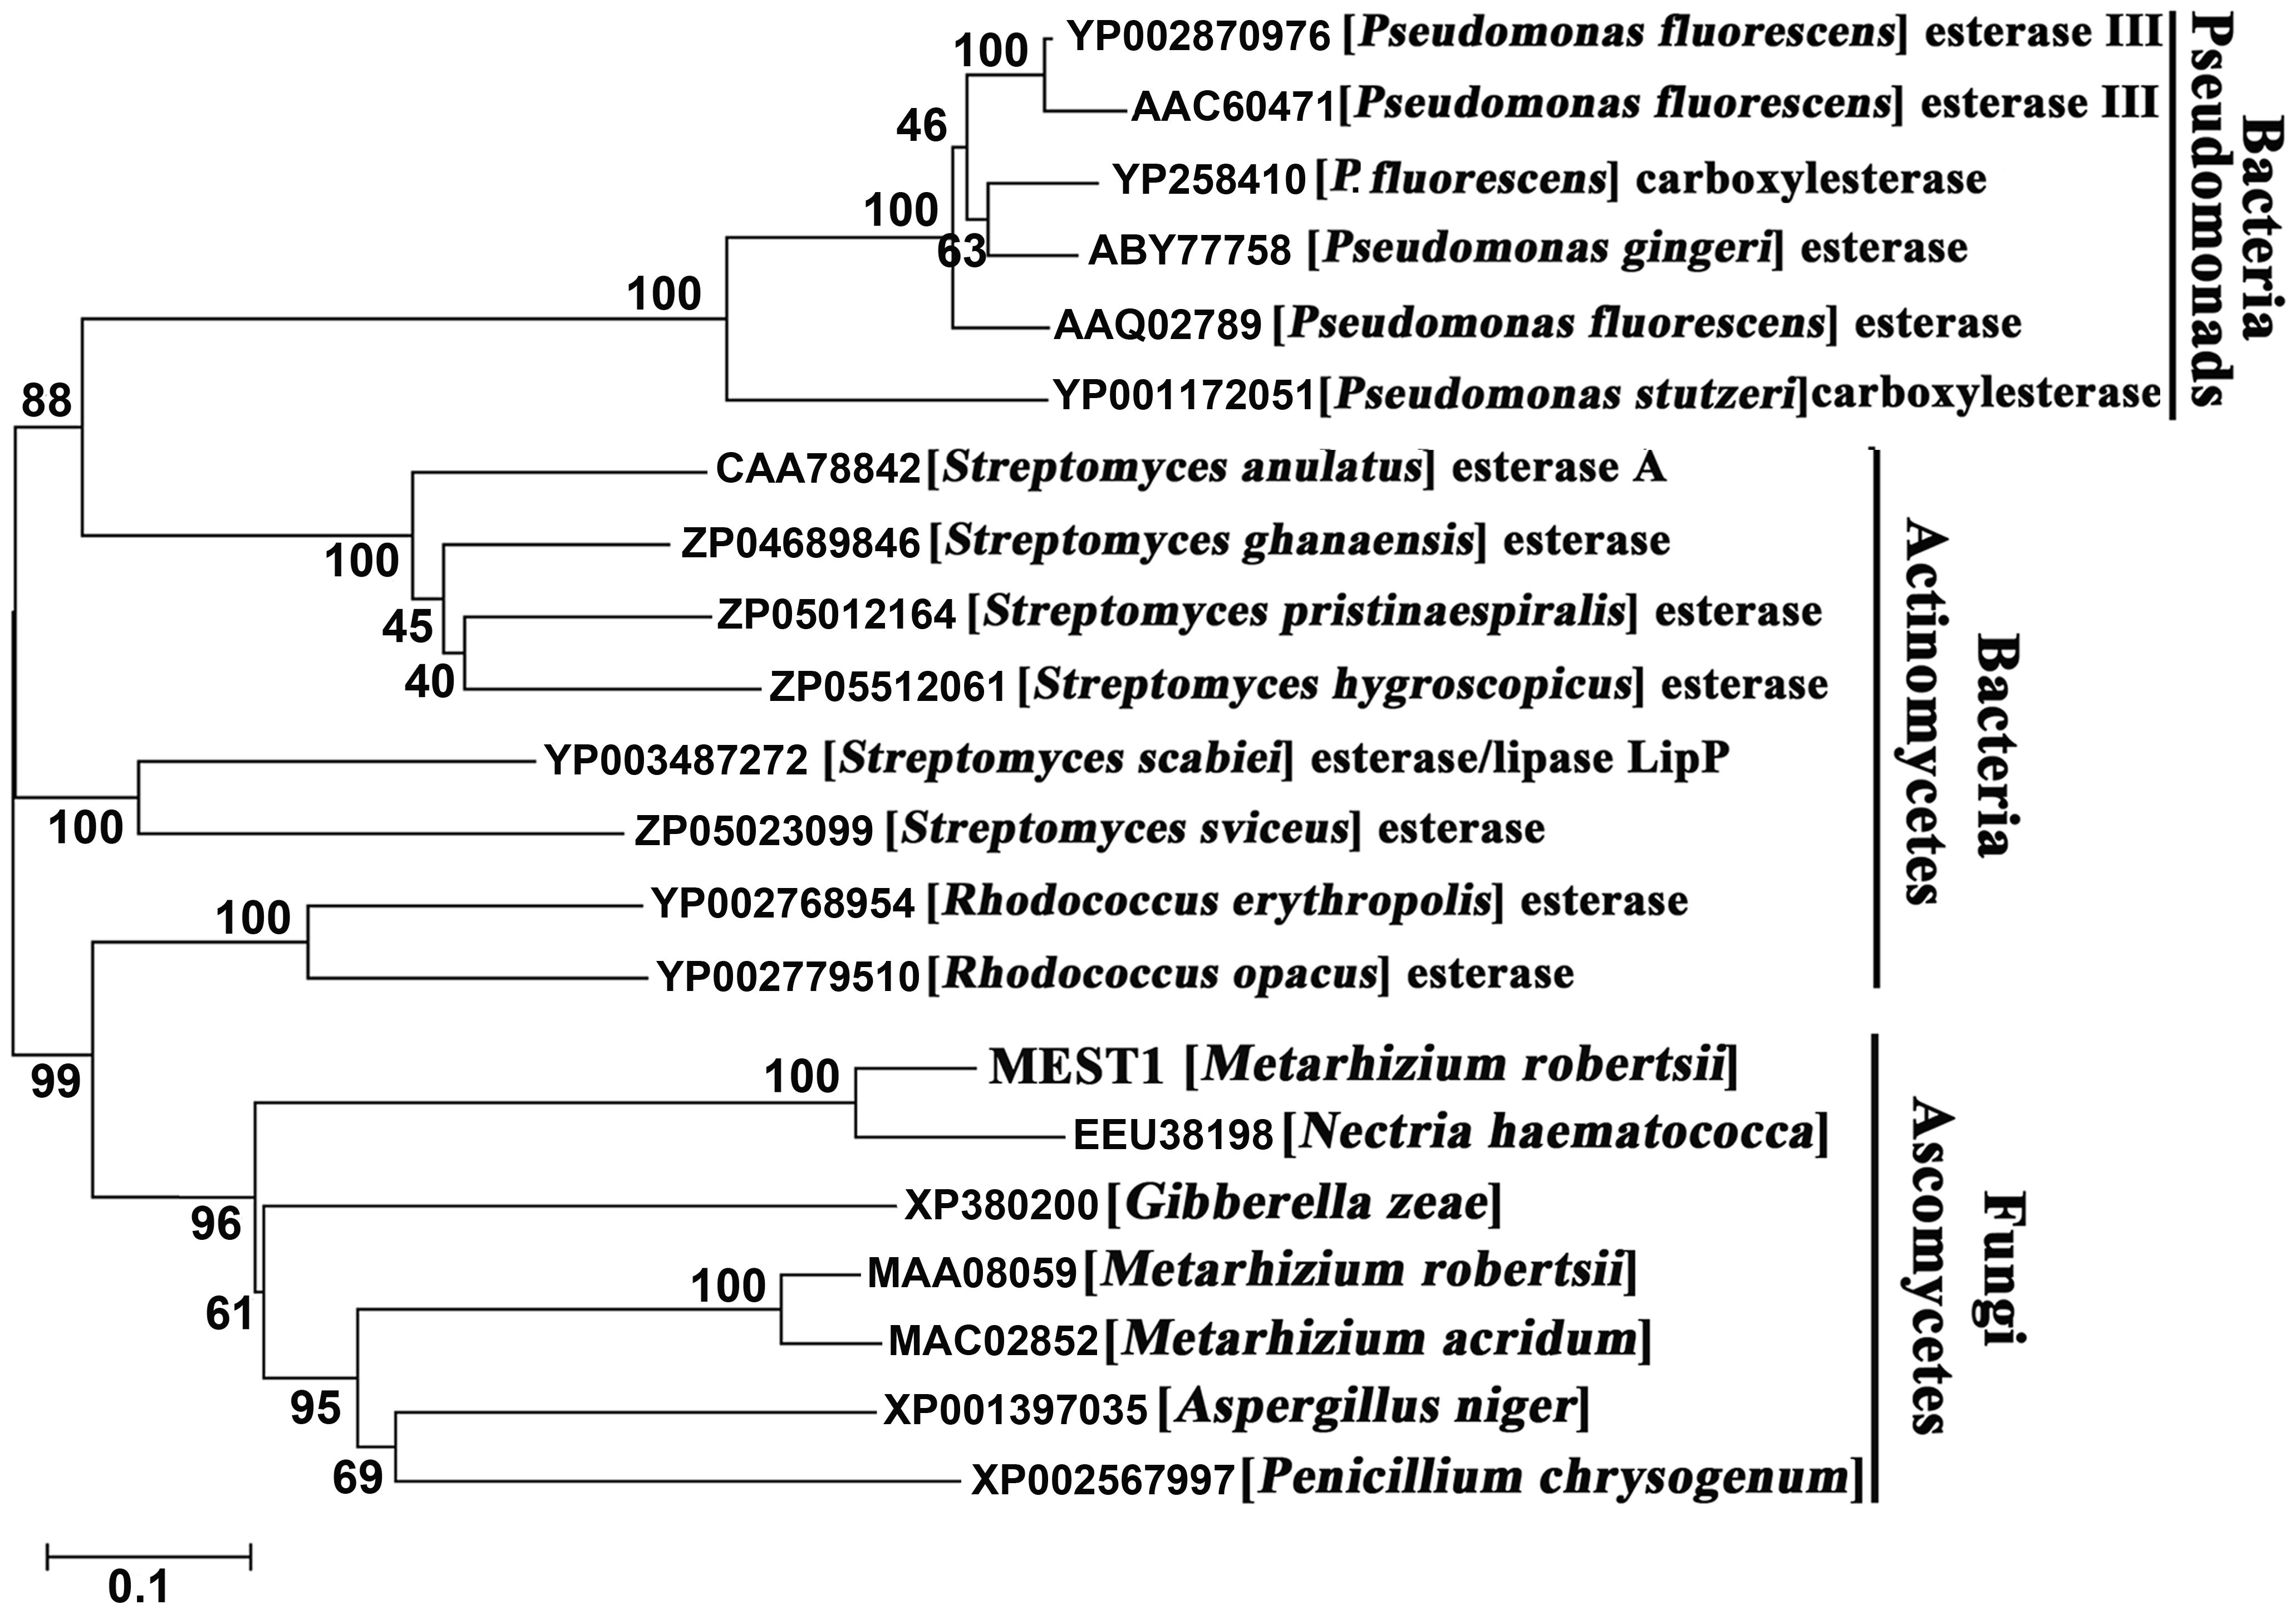 Phylogenetic relationship of MEST1 with its homologs.